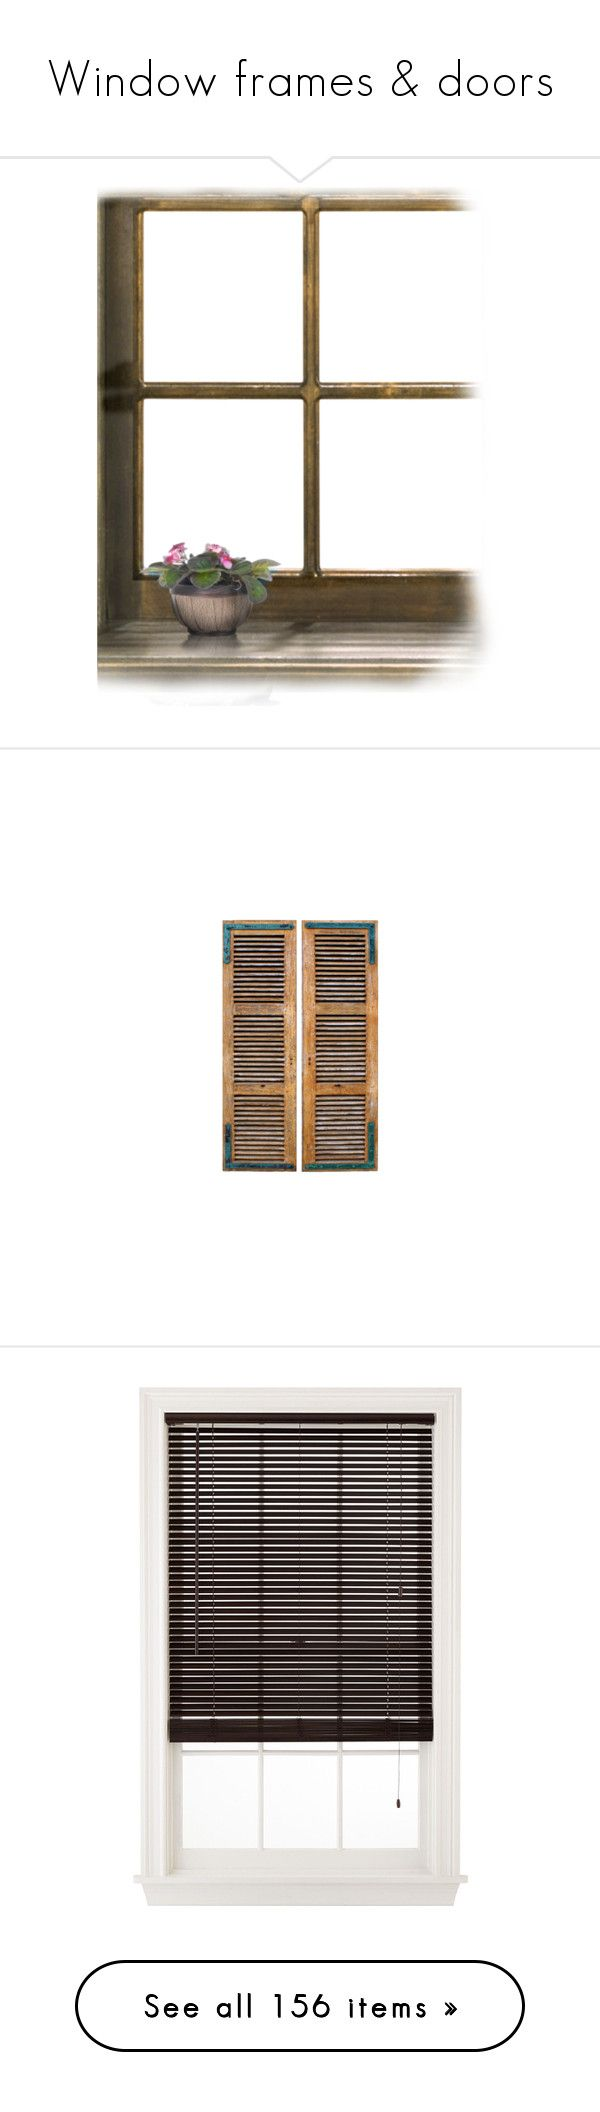 """""""Window frames & doors"""" by sally-simpson ❤ liked on Polyvore featuring window, borders, picture frame, home, home decor, windows, tubes, backgrounds, art and furniture"""